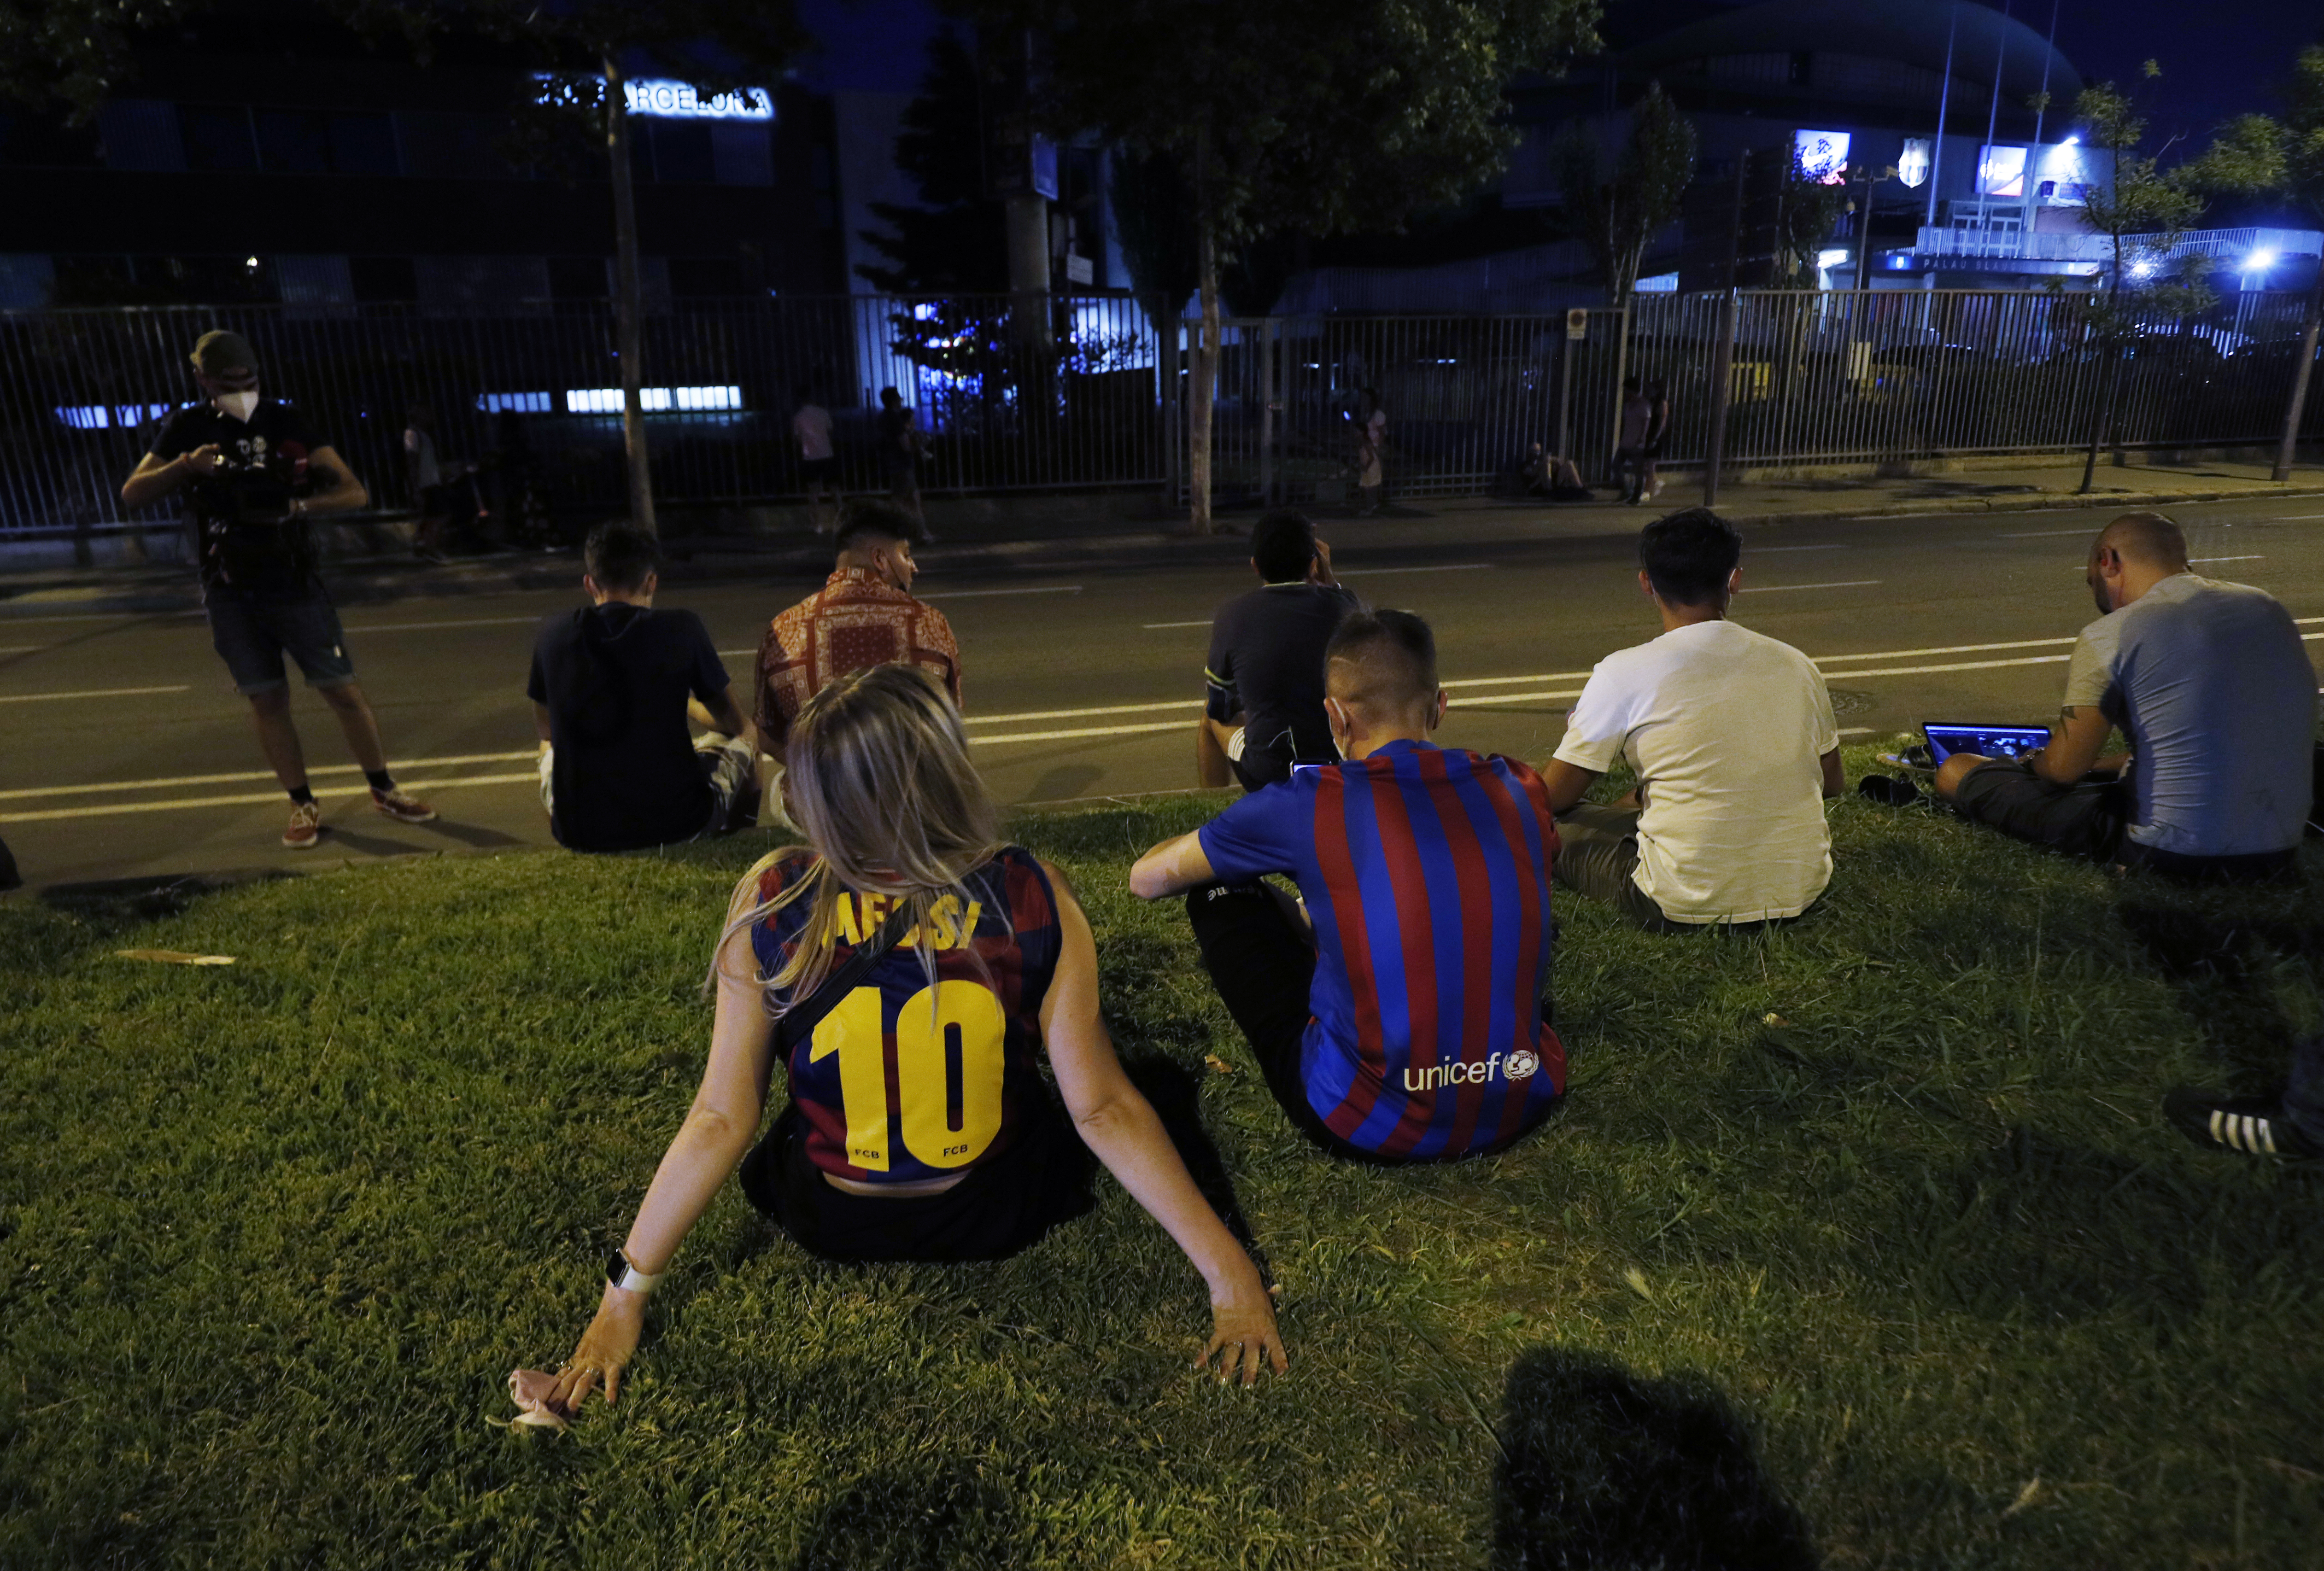 Soccer Football - FC Barcelona announce Lionel Messi will leave the club - Camp Nou, Barcelona, Spain - August 5, 2021 FC Barcelona fans are seen outside the Camp Nou after FC Barcelona announced Lionel Messi will leave the club REUTERS/Albert Gea